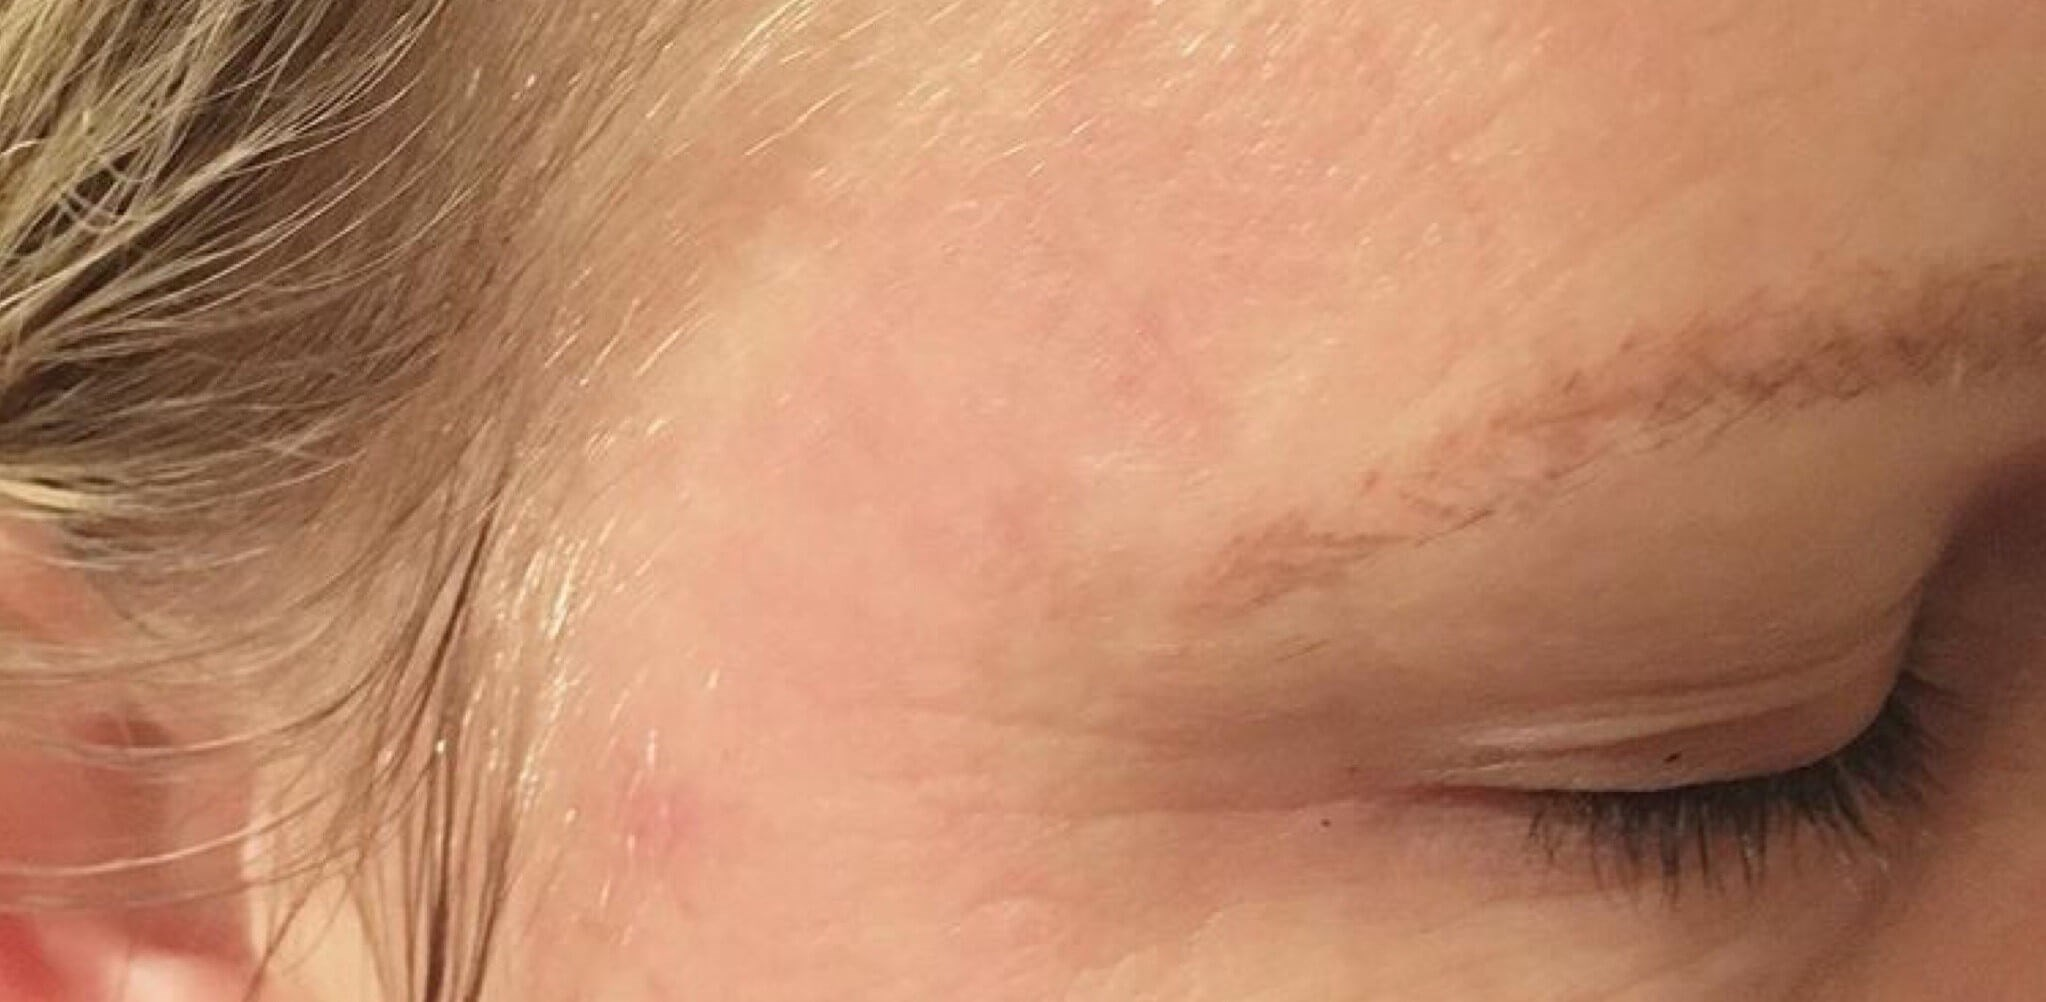 CHEMICAL PEEL RESULTS After